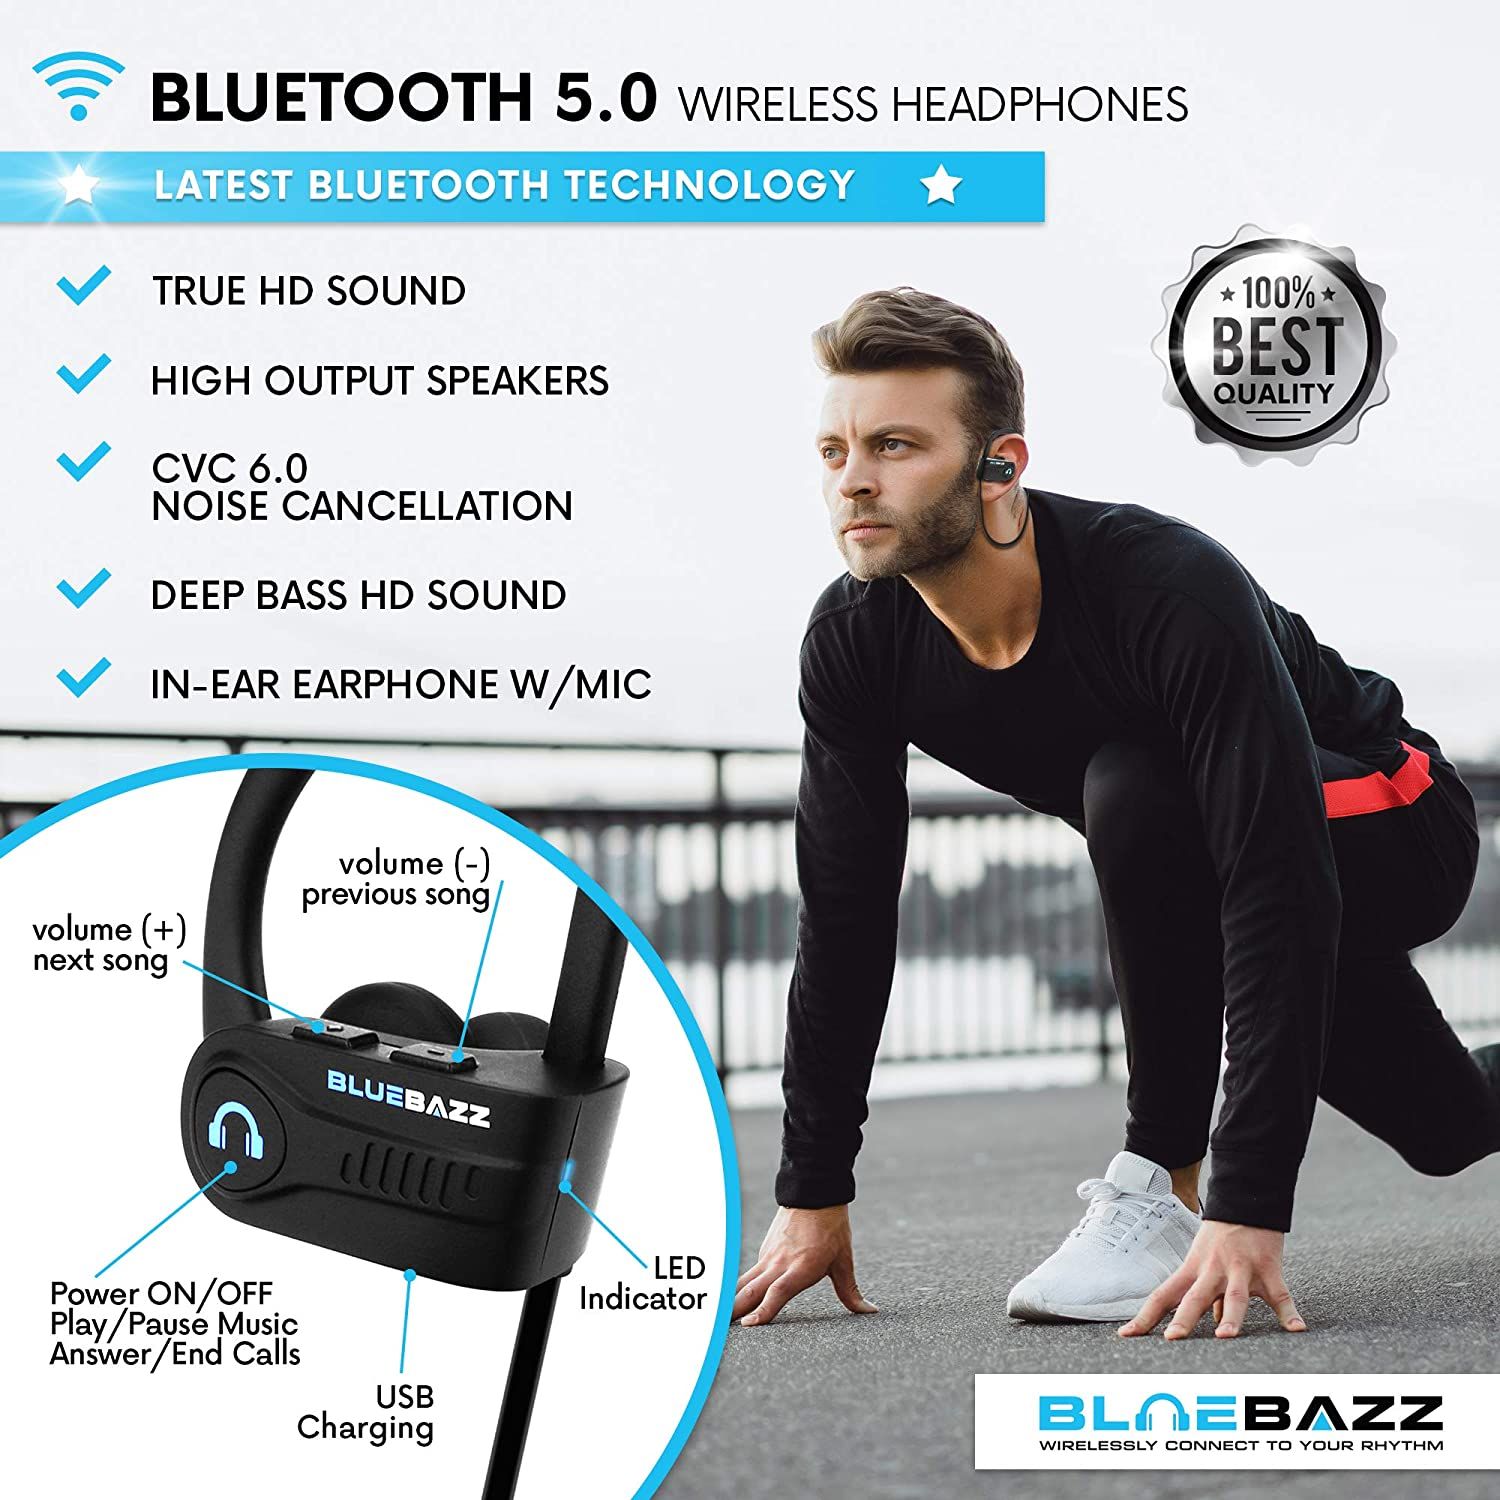 BlueBazz Sport S1 Bluetooth 5.0 Wireless Headphones Sport Earphones W Mic, Deep Bass Beats HD Stereo Sound IPX7 Water Proof Sweat Proof Earbuds for Gym Running Workout Noise Cancelling 9 Hours Playing